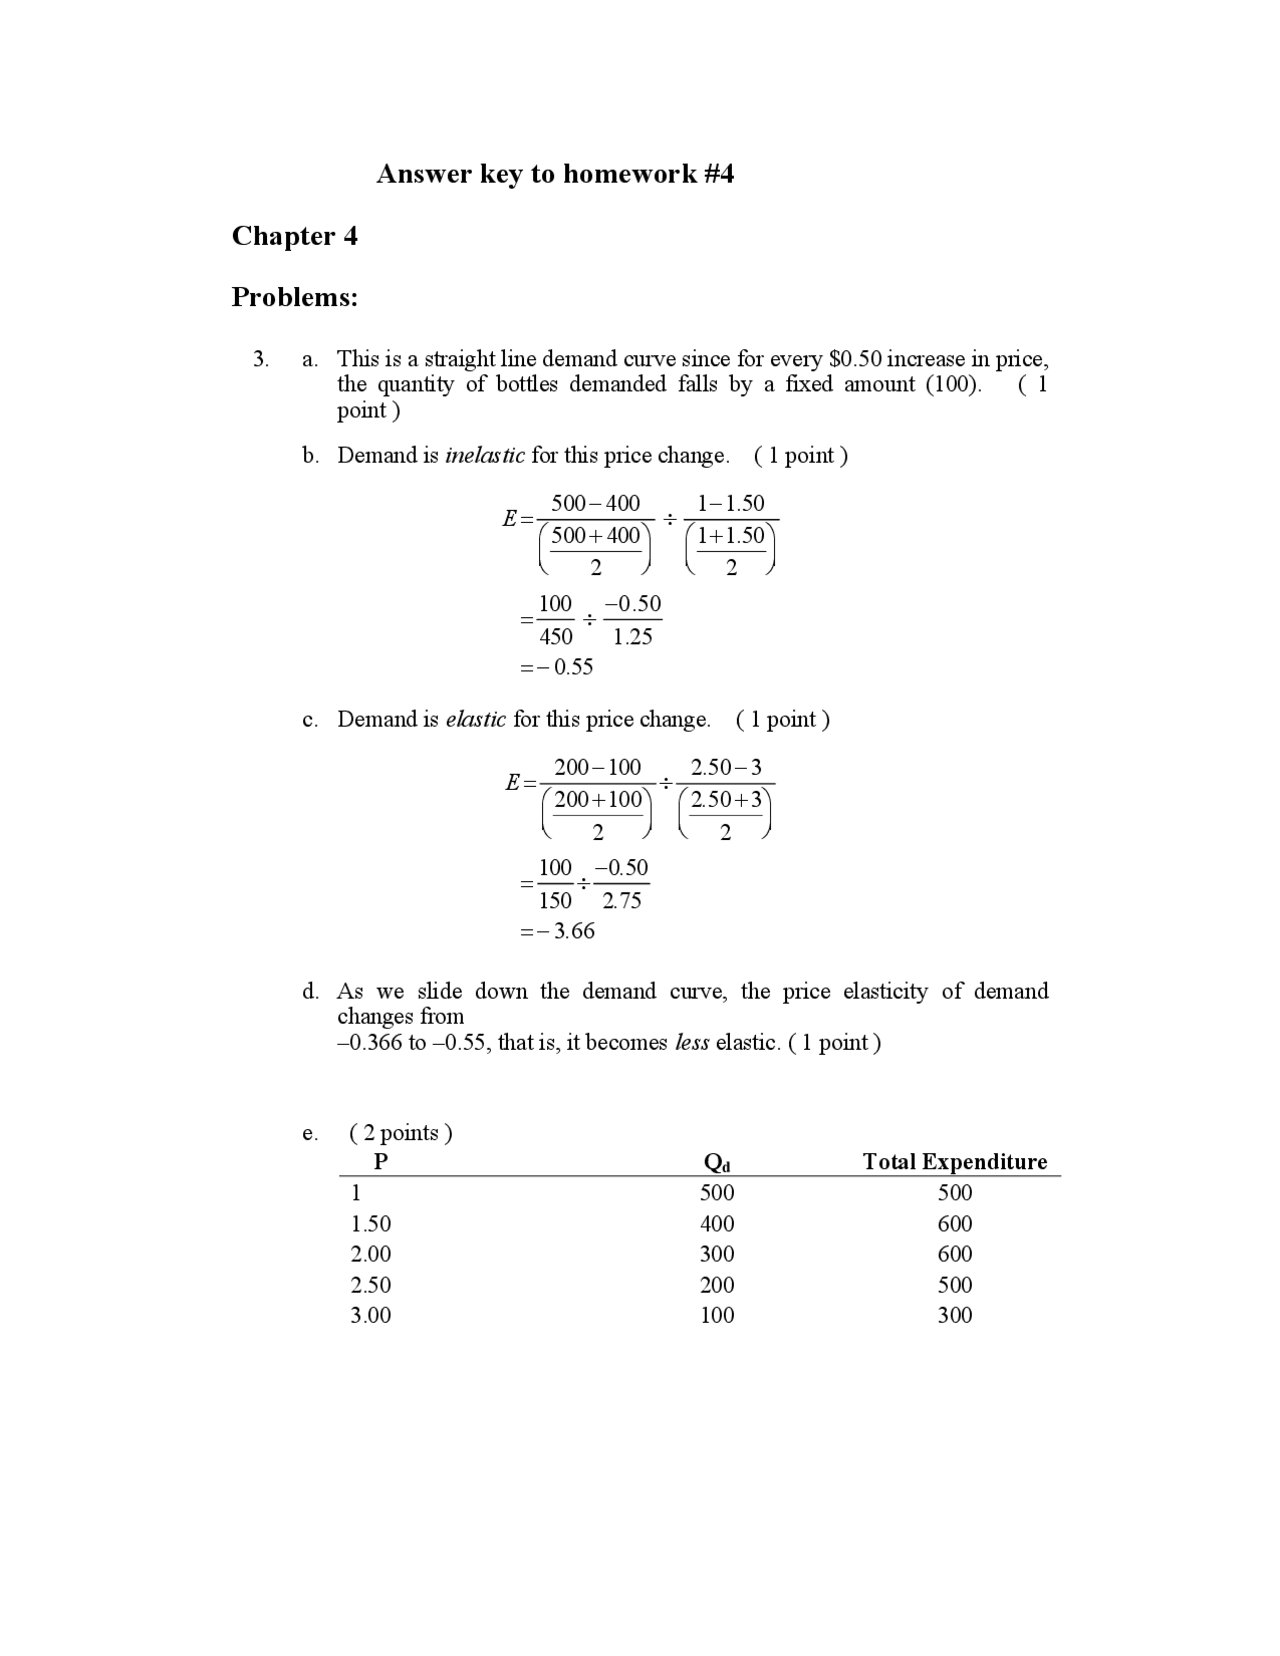 Econ 101 homework answers awesome resume title